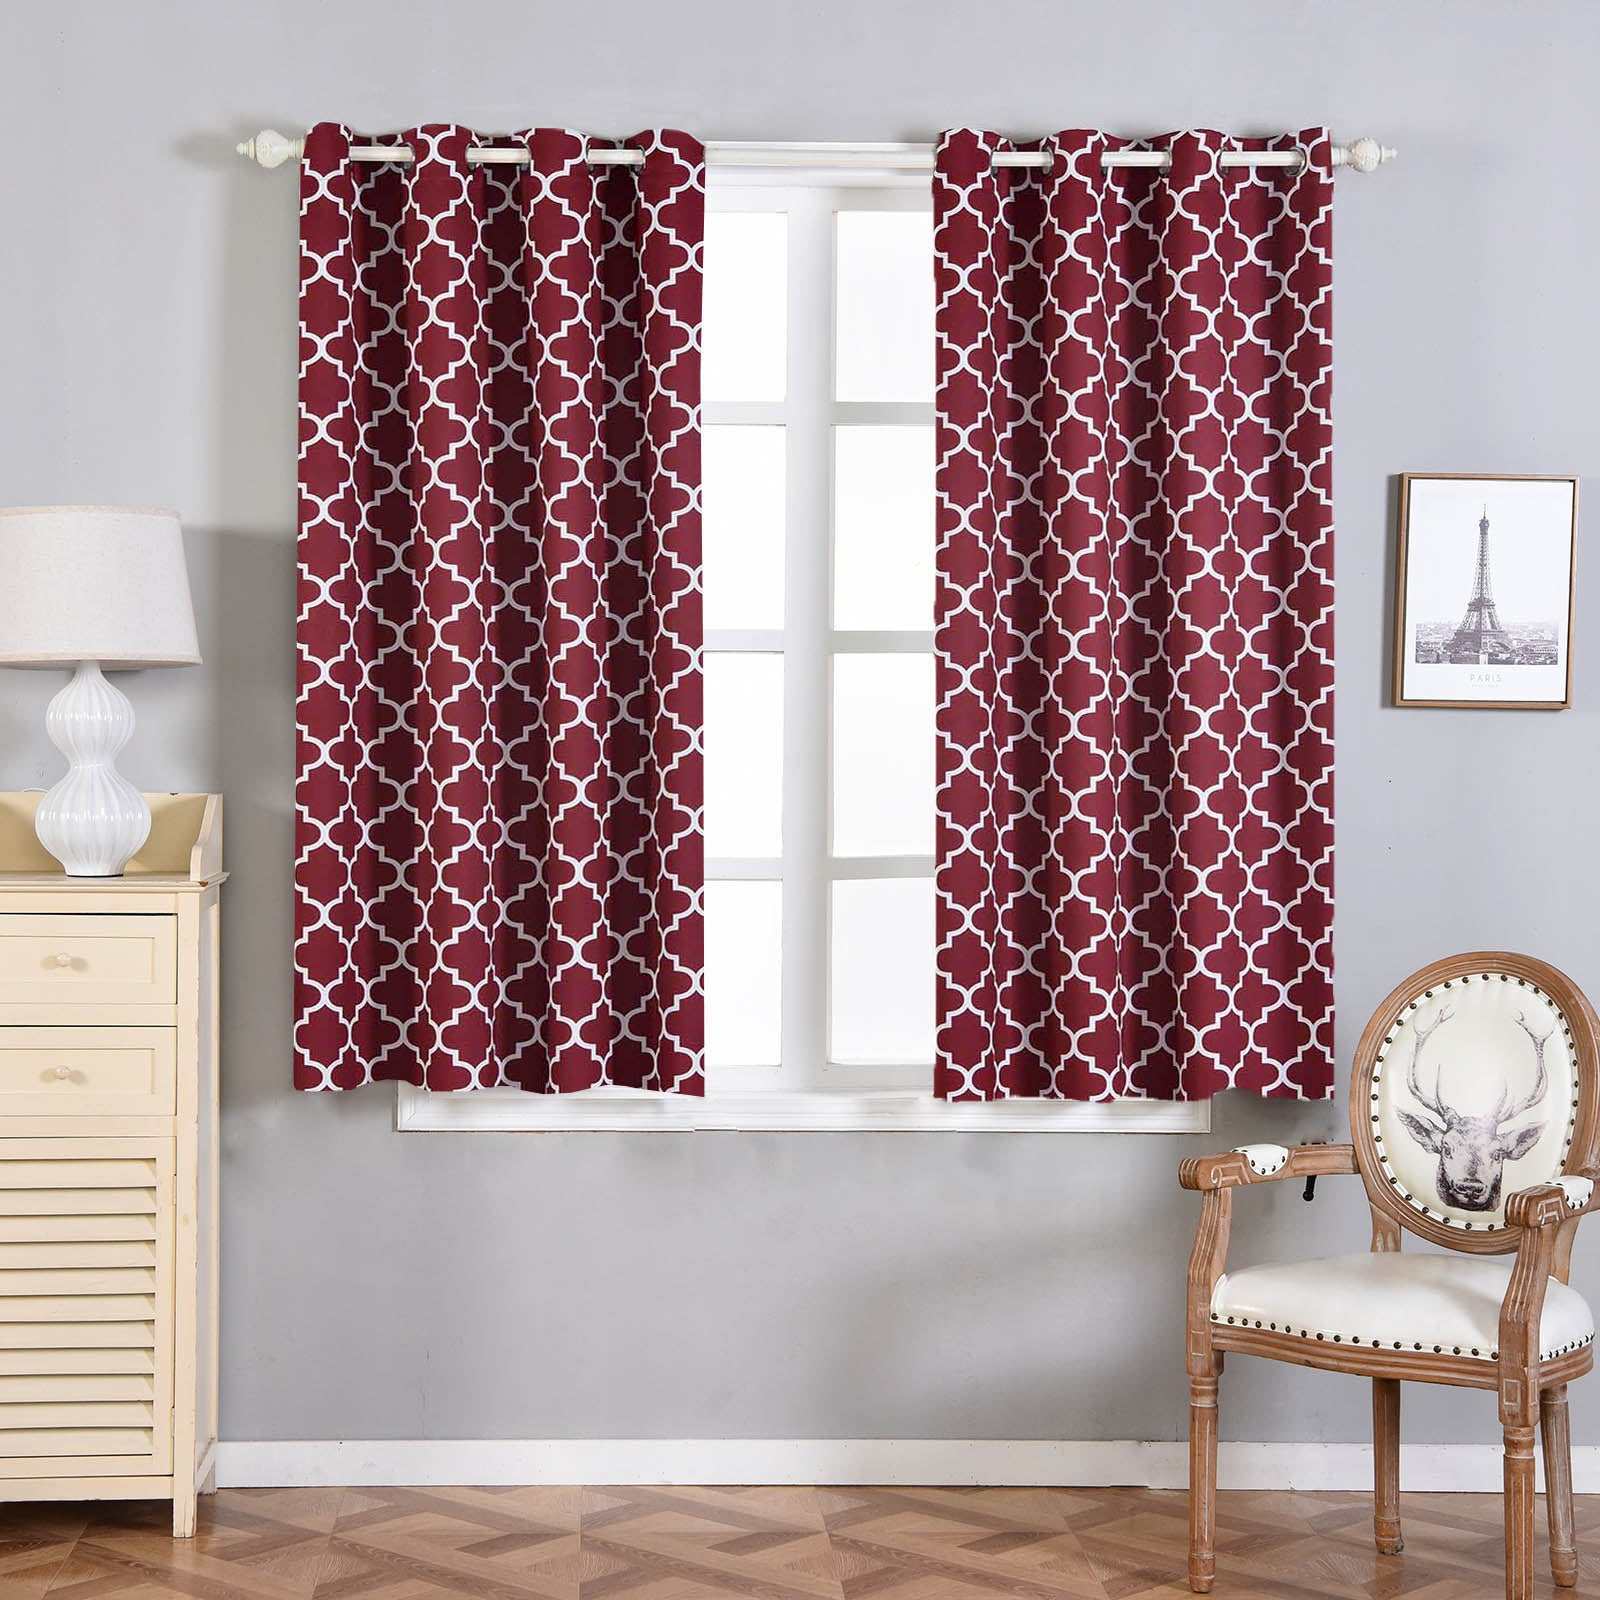 Blackout Curtains Lattice Print 52x64 White Burgundy Pack Of 2 Thermal Insulated